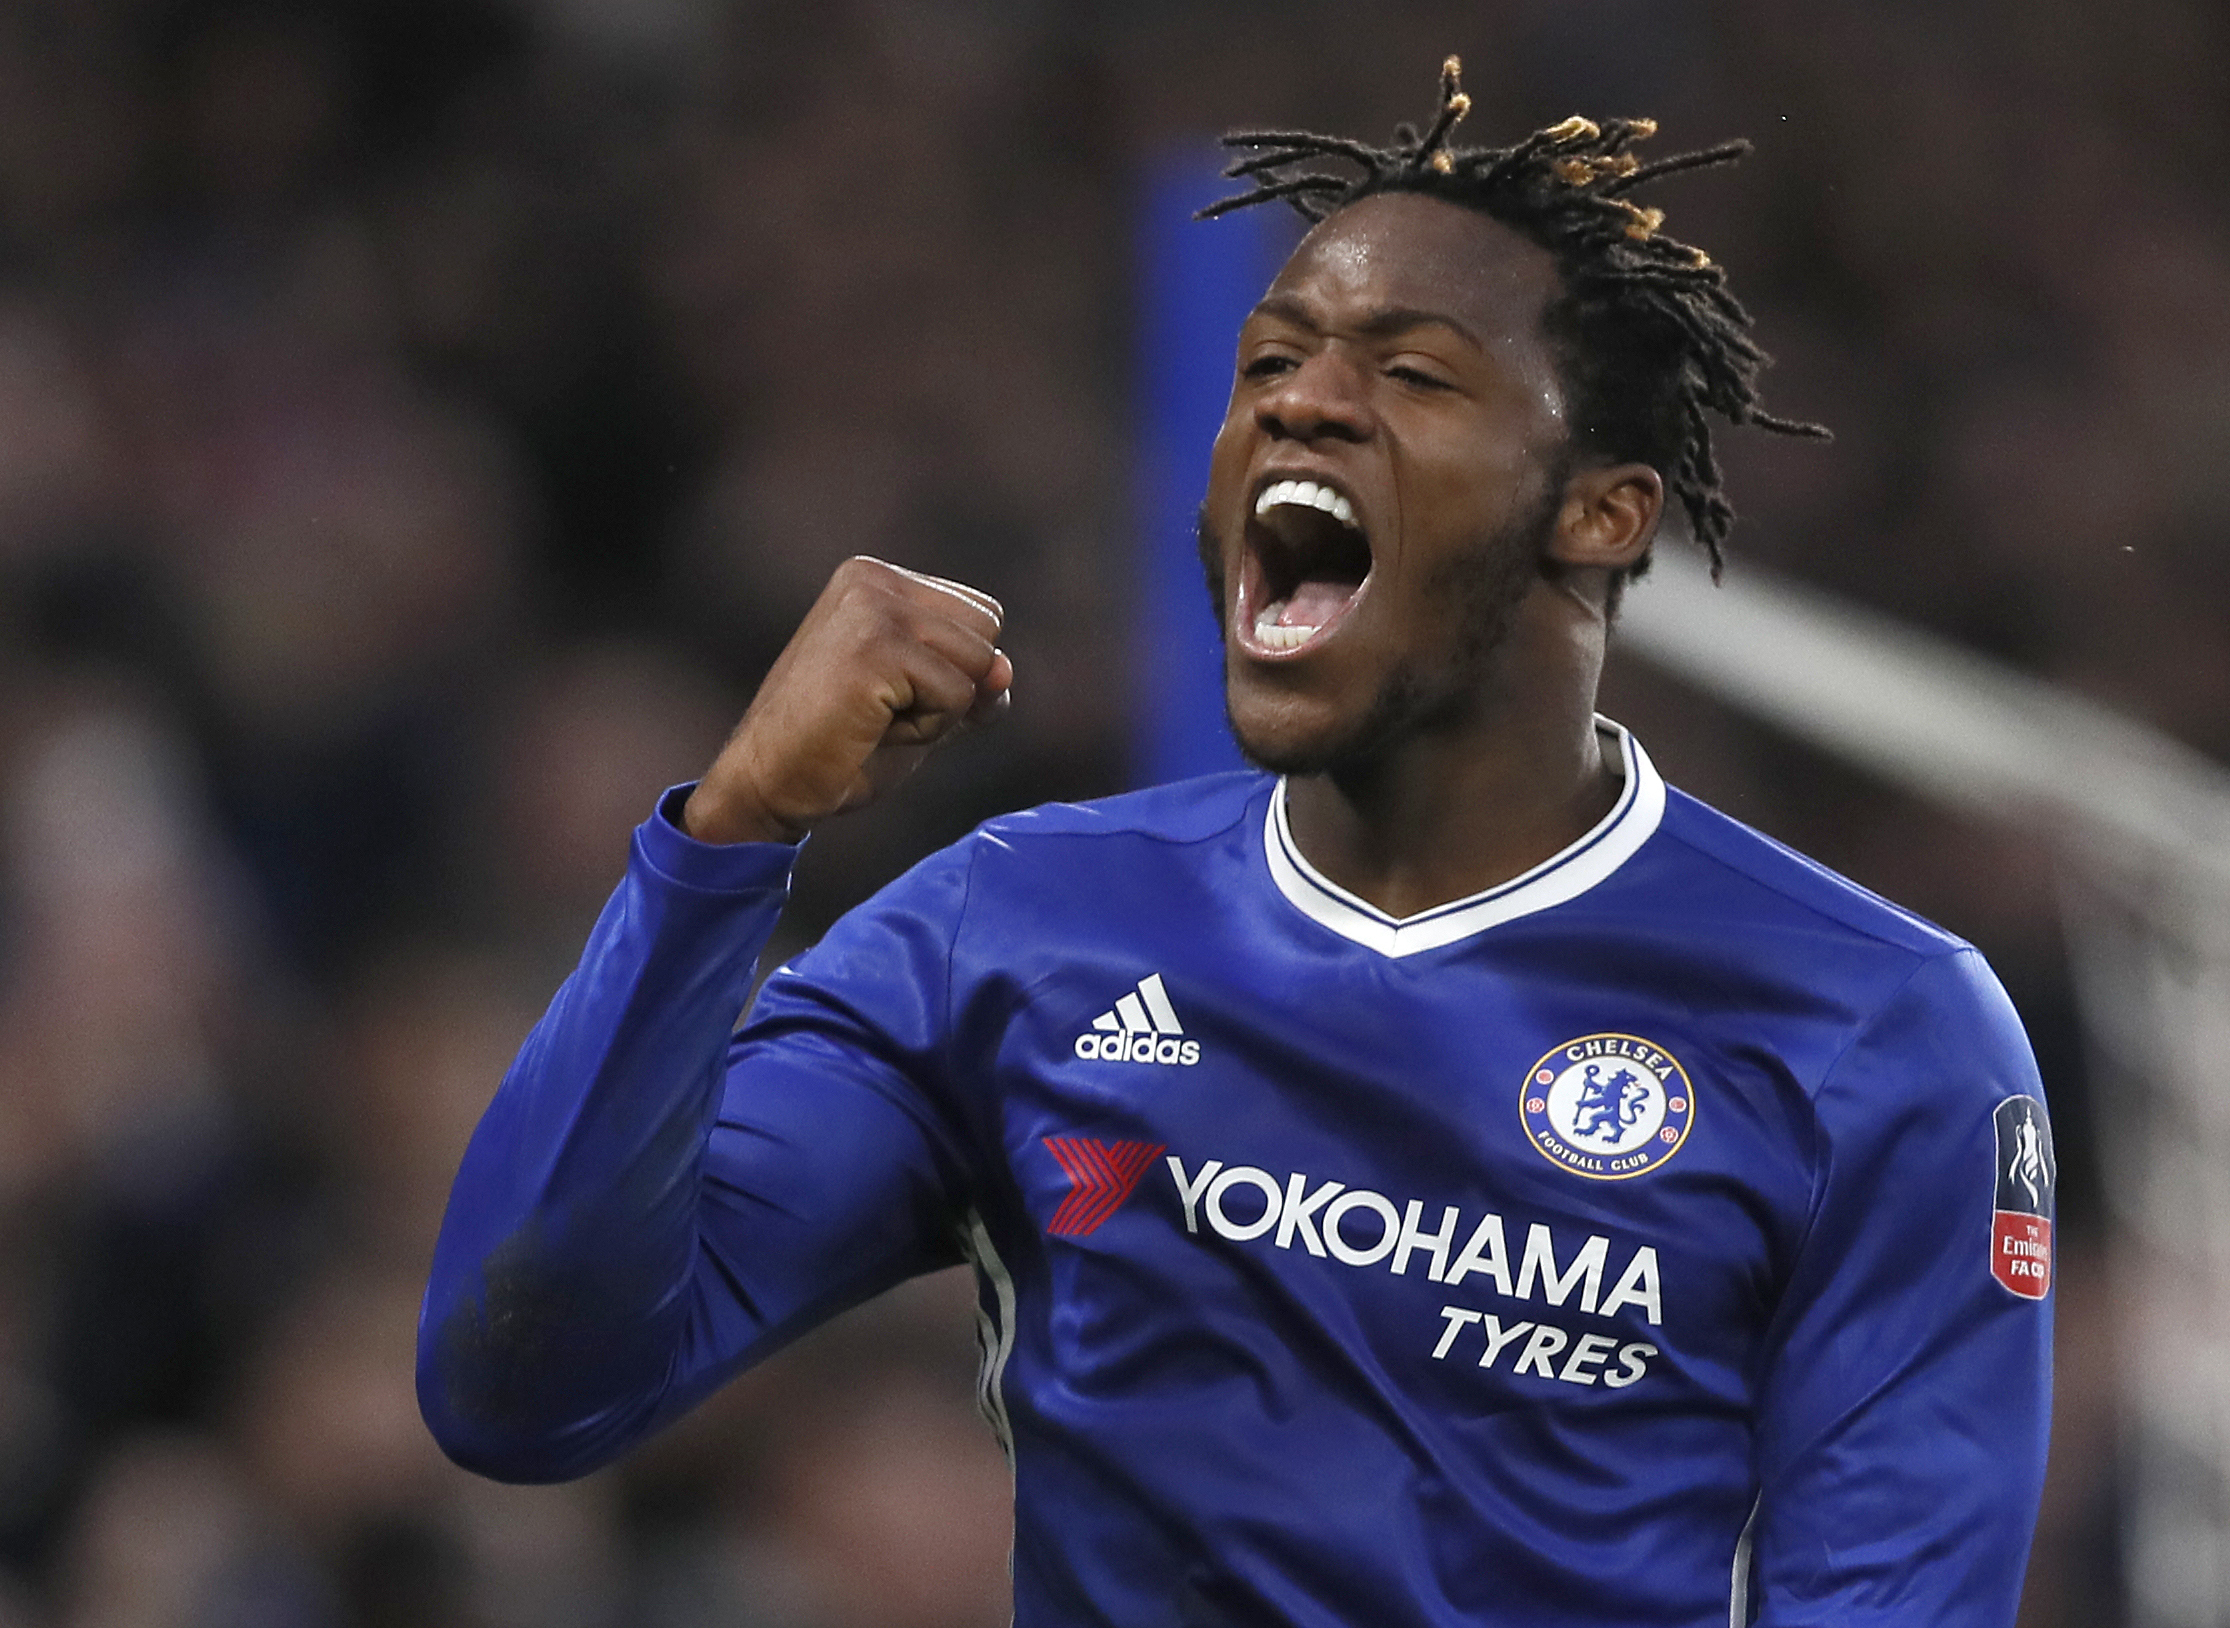 Conte backs Batshuayi amid reports Chelsea striker is set for move